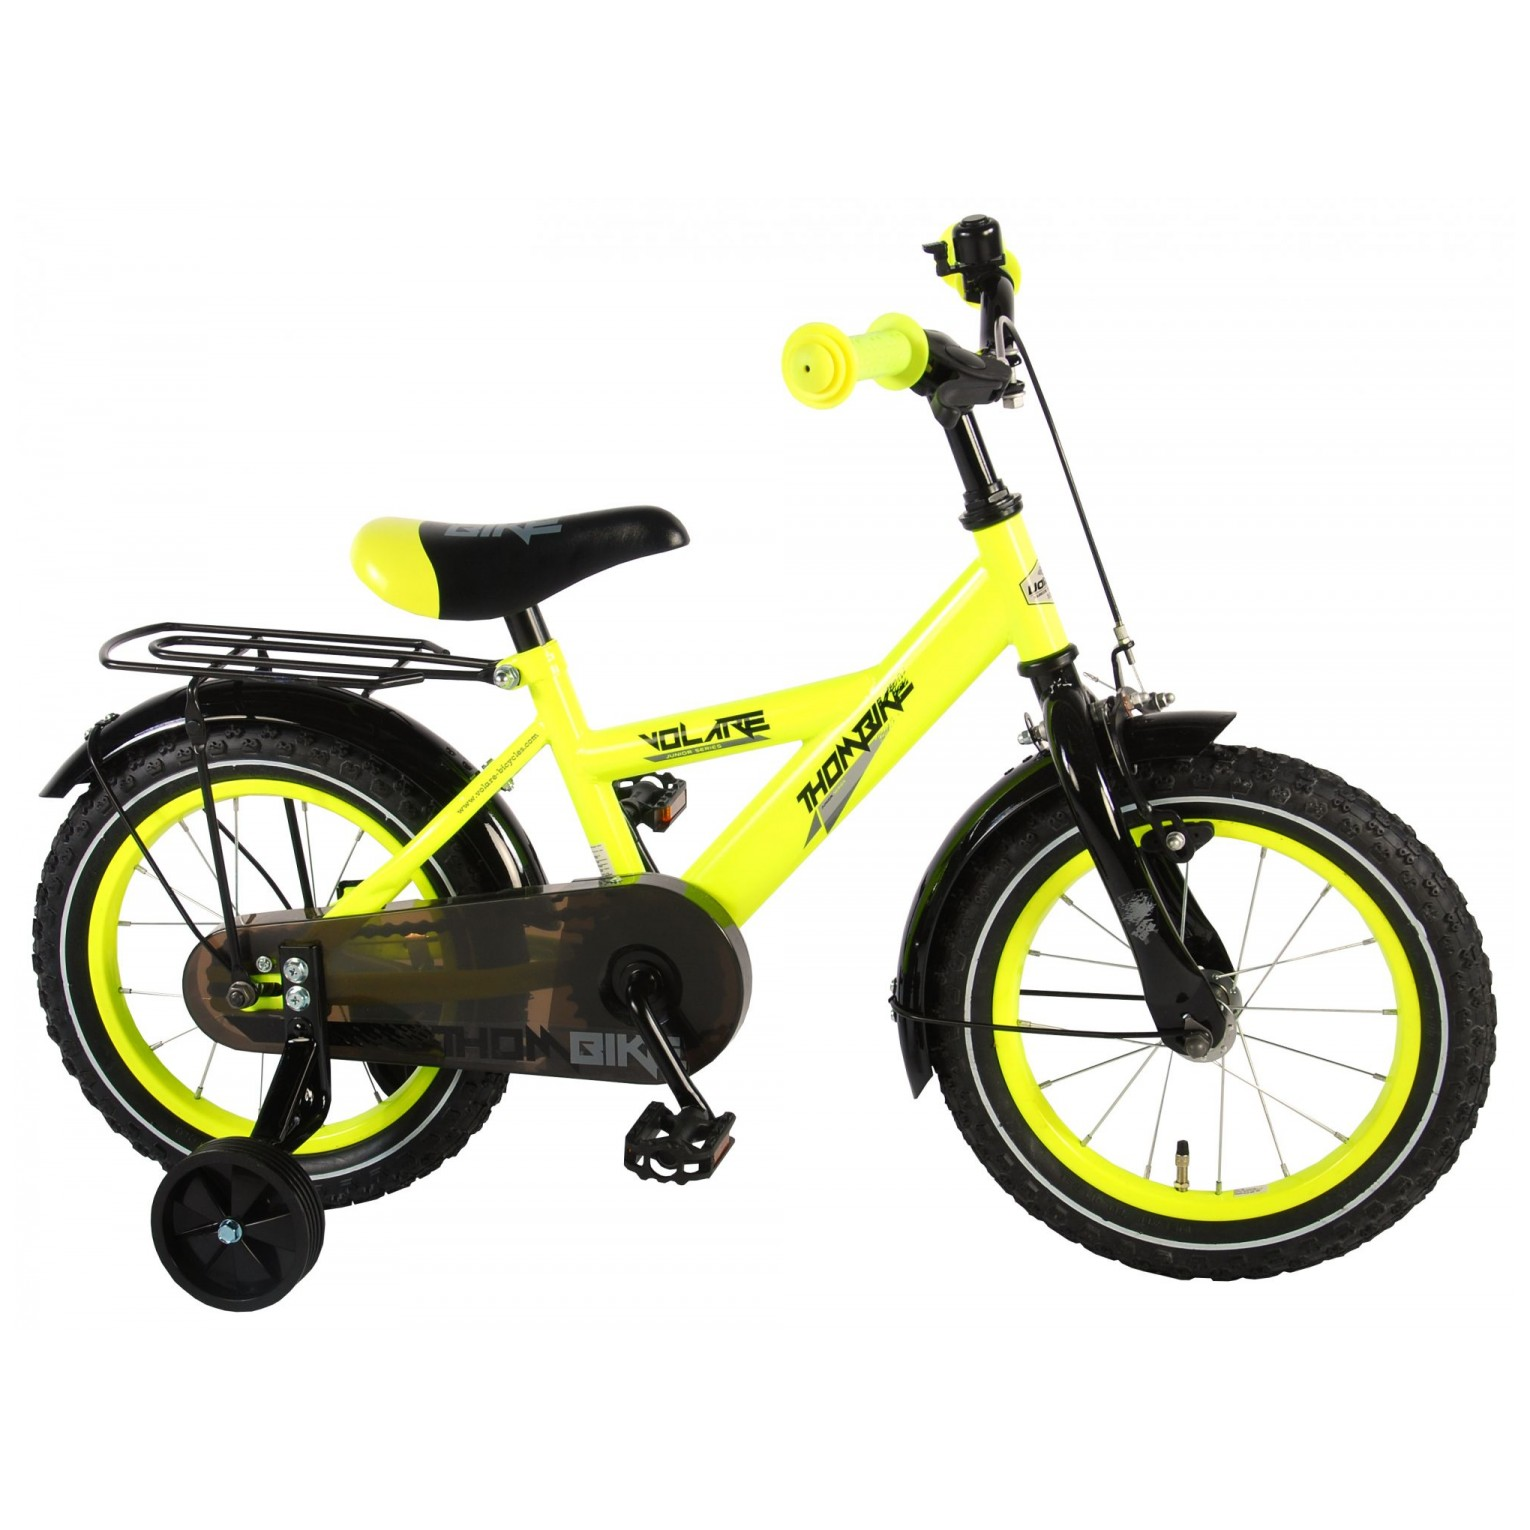 Volare Thombike Fiets - 14 inch - Neon Geel